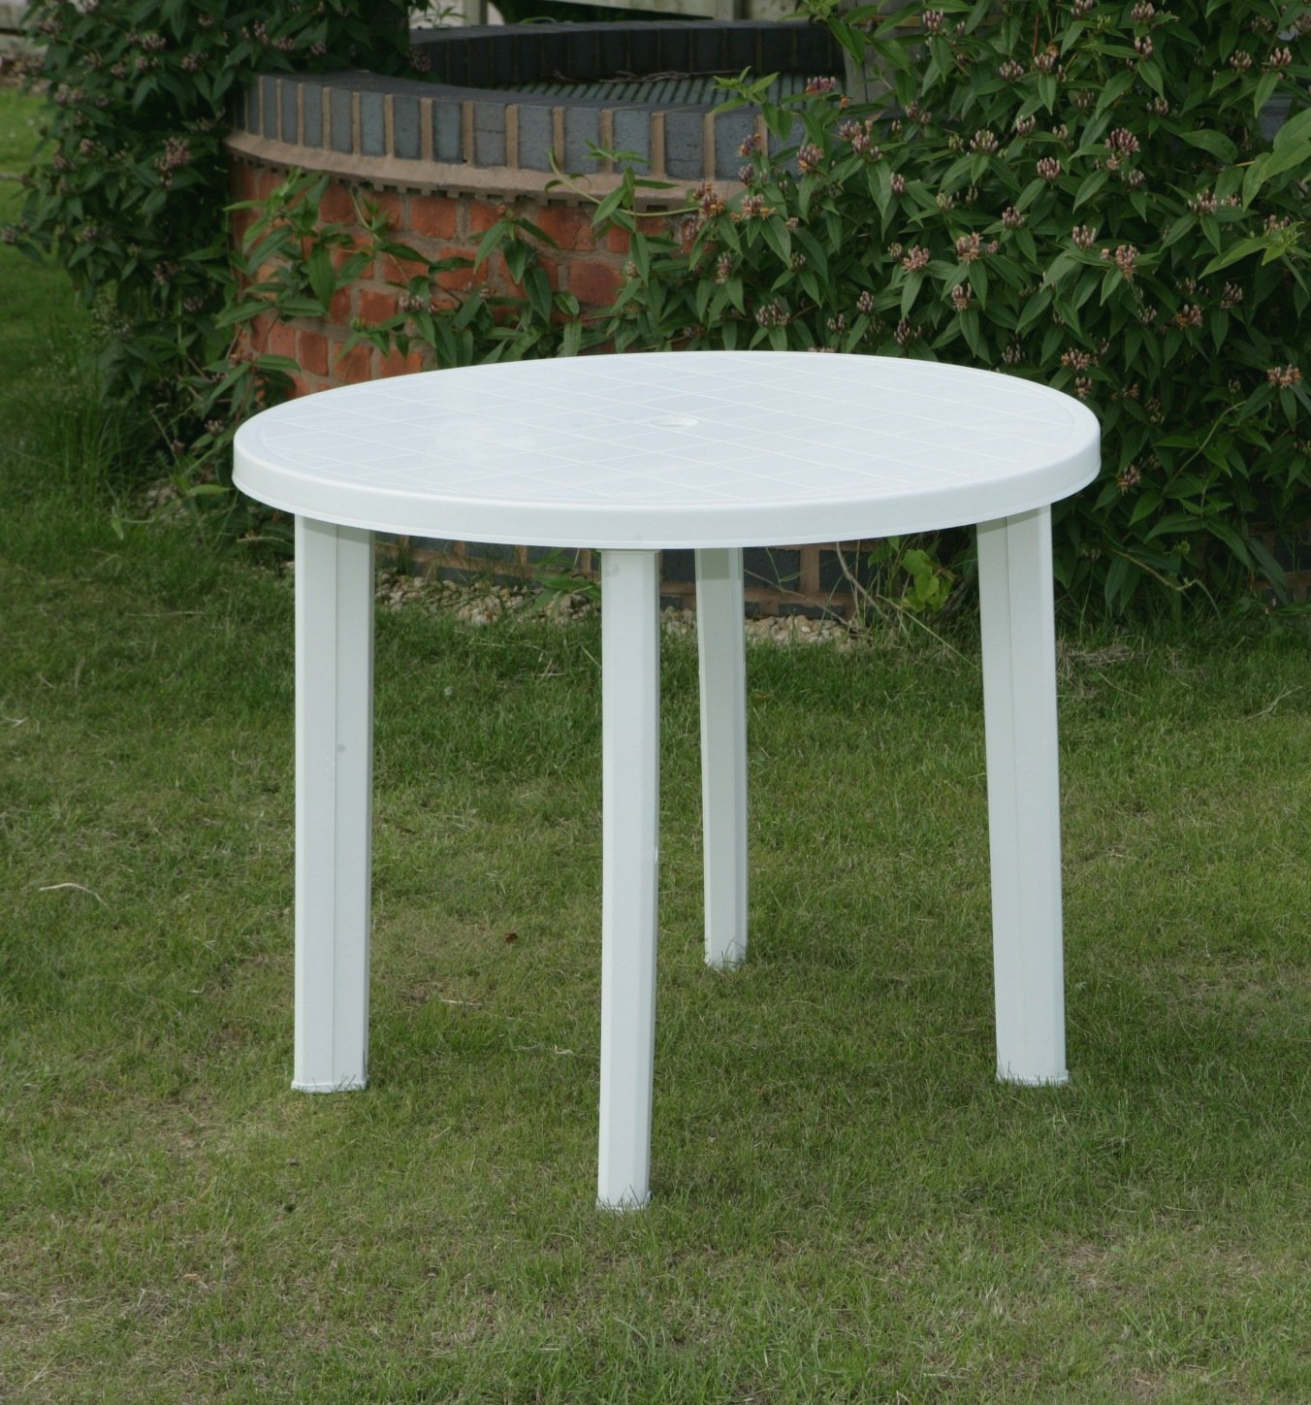 plastic garden table classy resin plastic patio furniture for your residence idea: round garden PNJOKBY